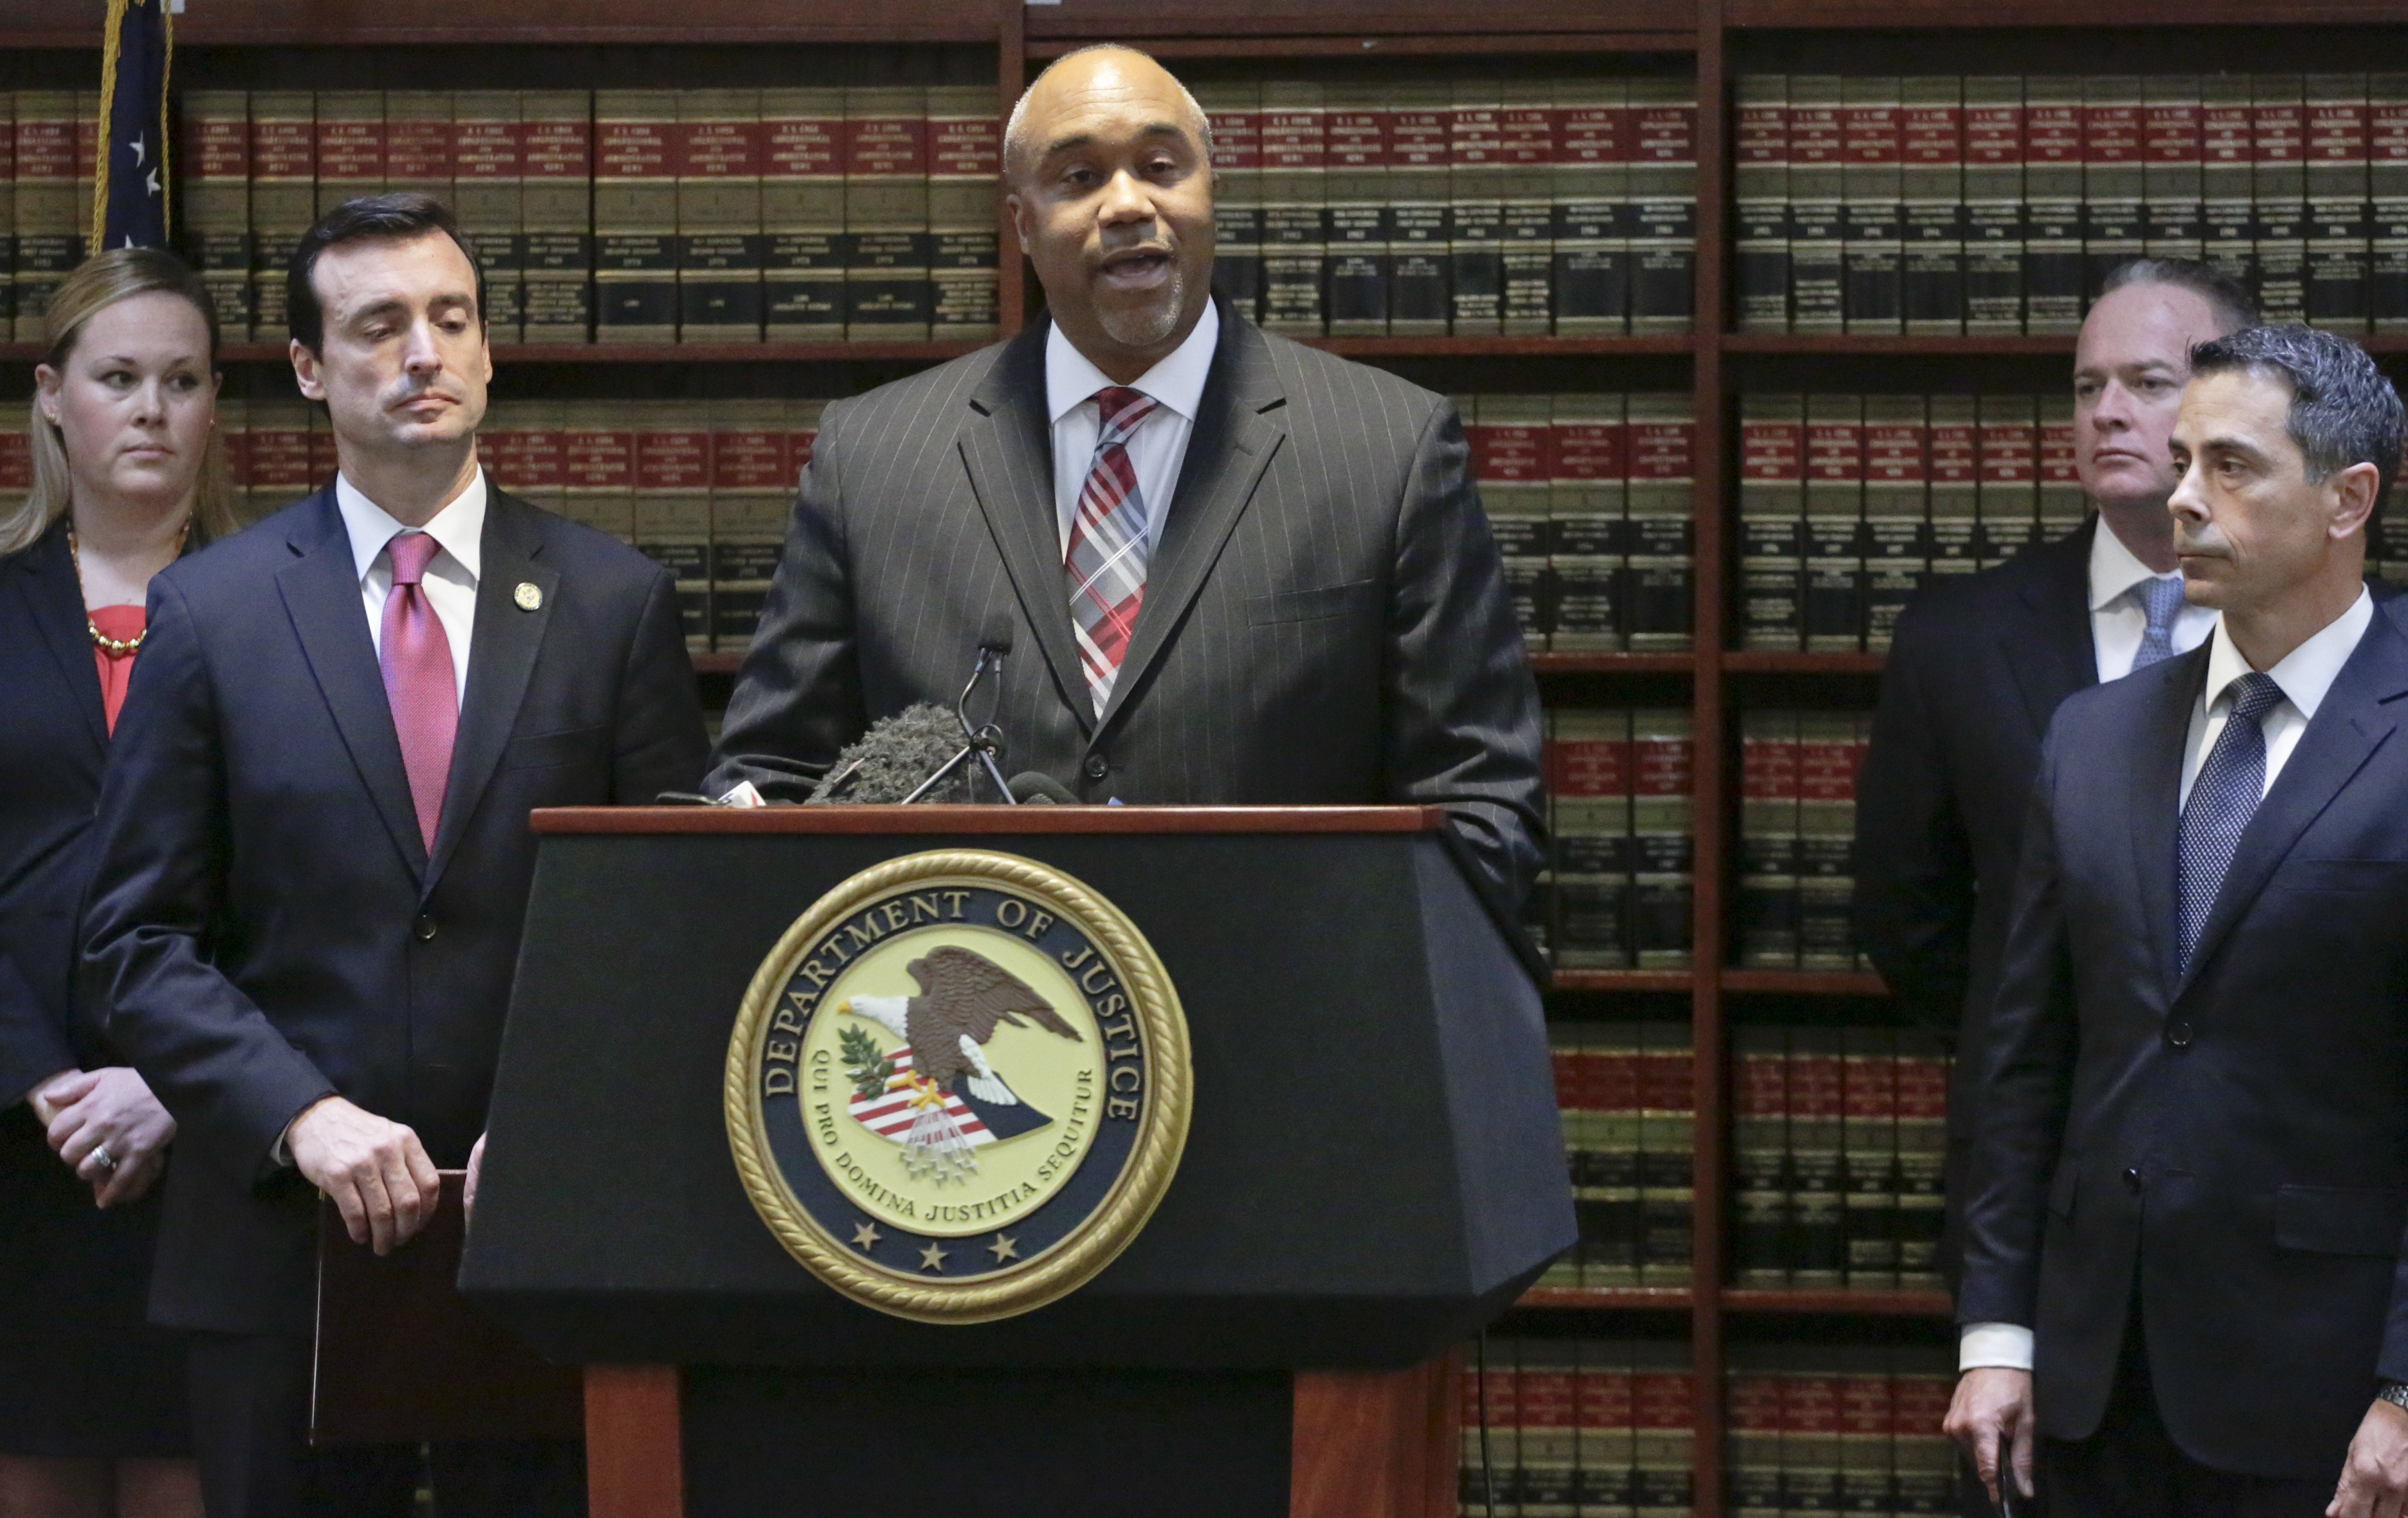 """U.S. attorney Robert Capers (C) during a news conference, announcing charges for Mexican drug kingpin Joaquin """"El Chapo"""" Guzman as the murderous architect of a three-decade-long web of violence, corruption and drug trafficking in the Brooklyn borough of New York on Jan. 20, 2017. (AP Photo/Mark Lennihan)"""